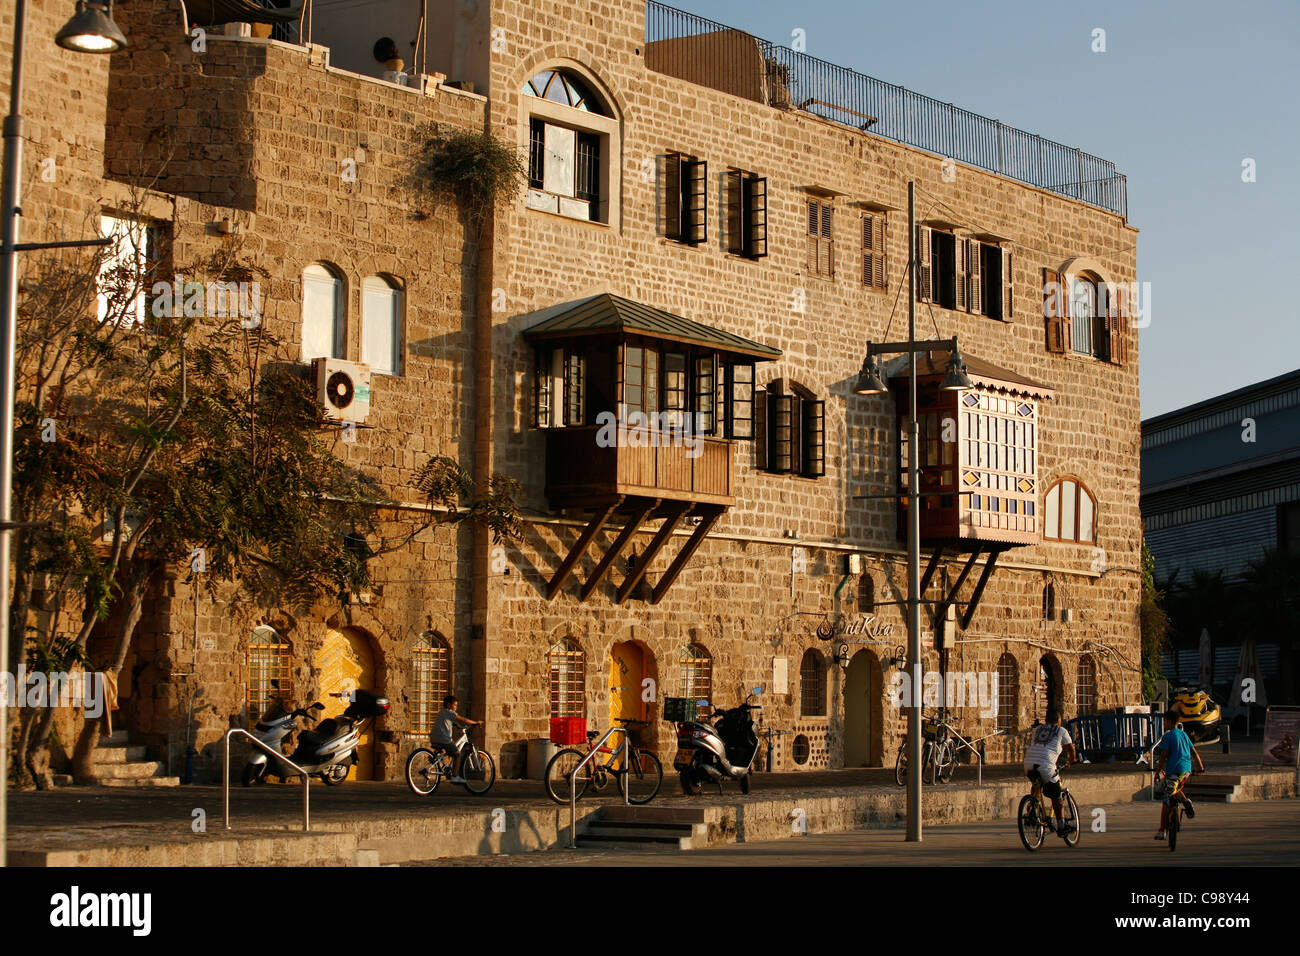 Old building by the port in Old Jaffa, Tel Aviv, Israel. Stock Photo